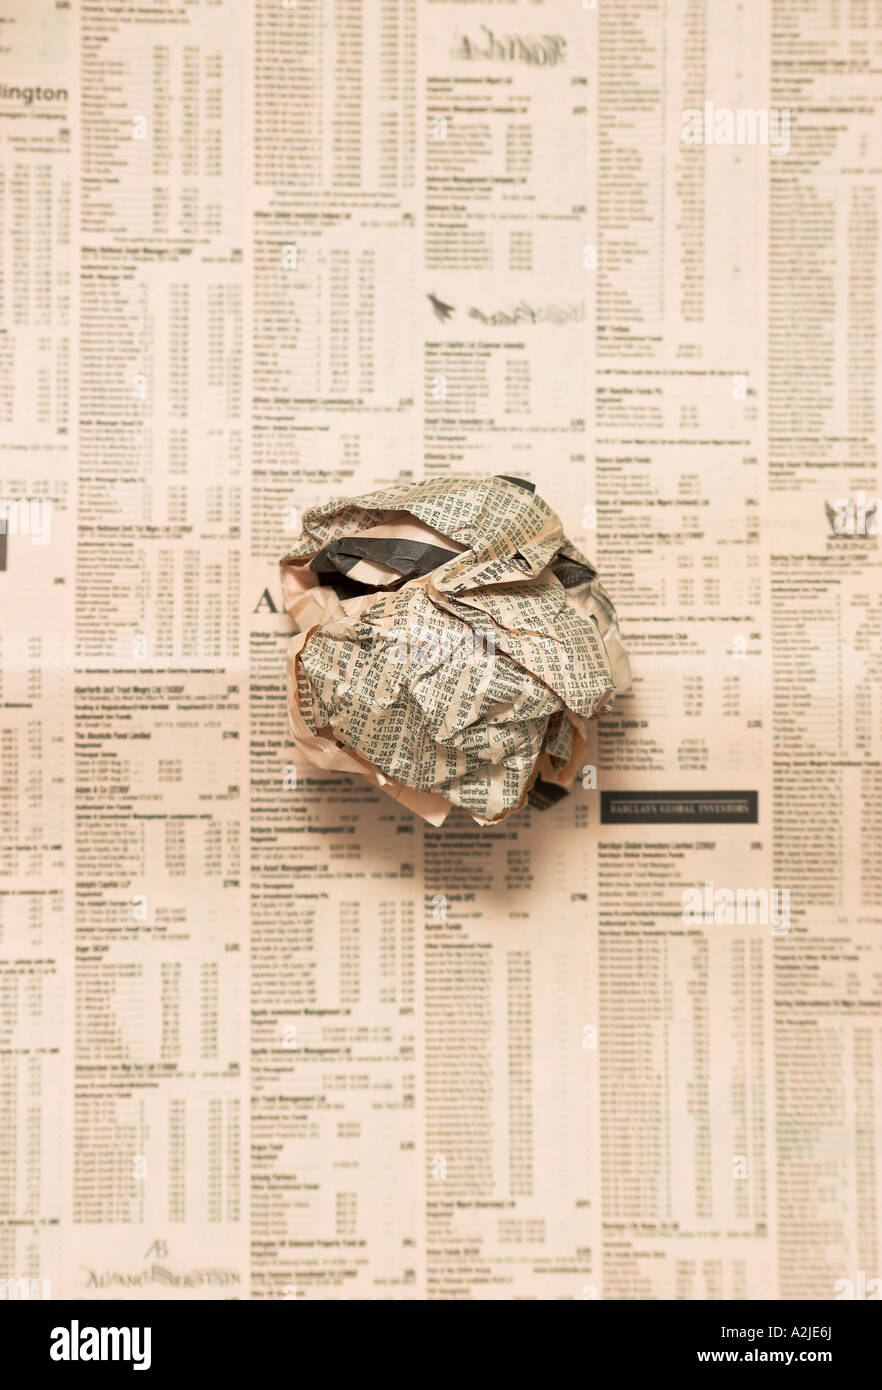 Scrunched ball of newspaper on flat page of newspaper - Stock Image